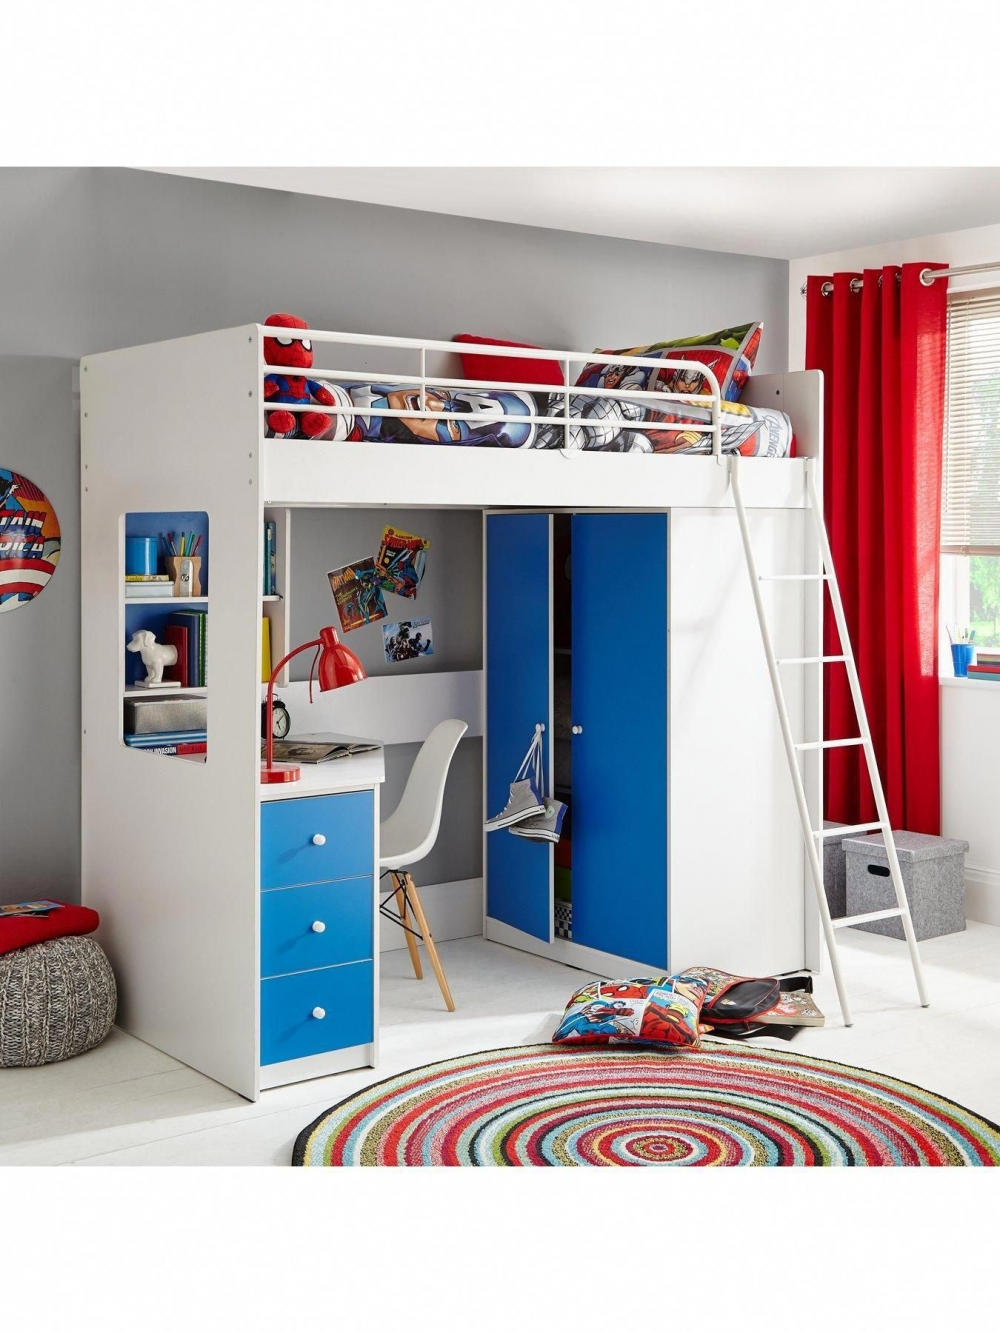 Lovely Bunk Bed with Desk and Drawers On